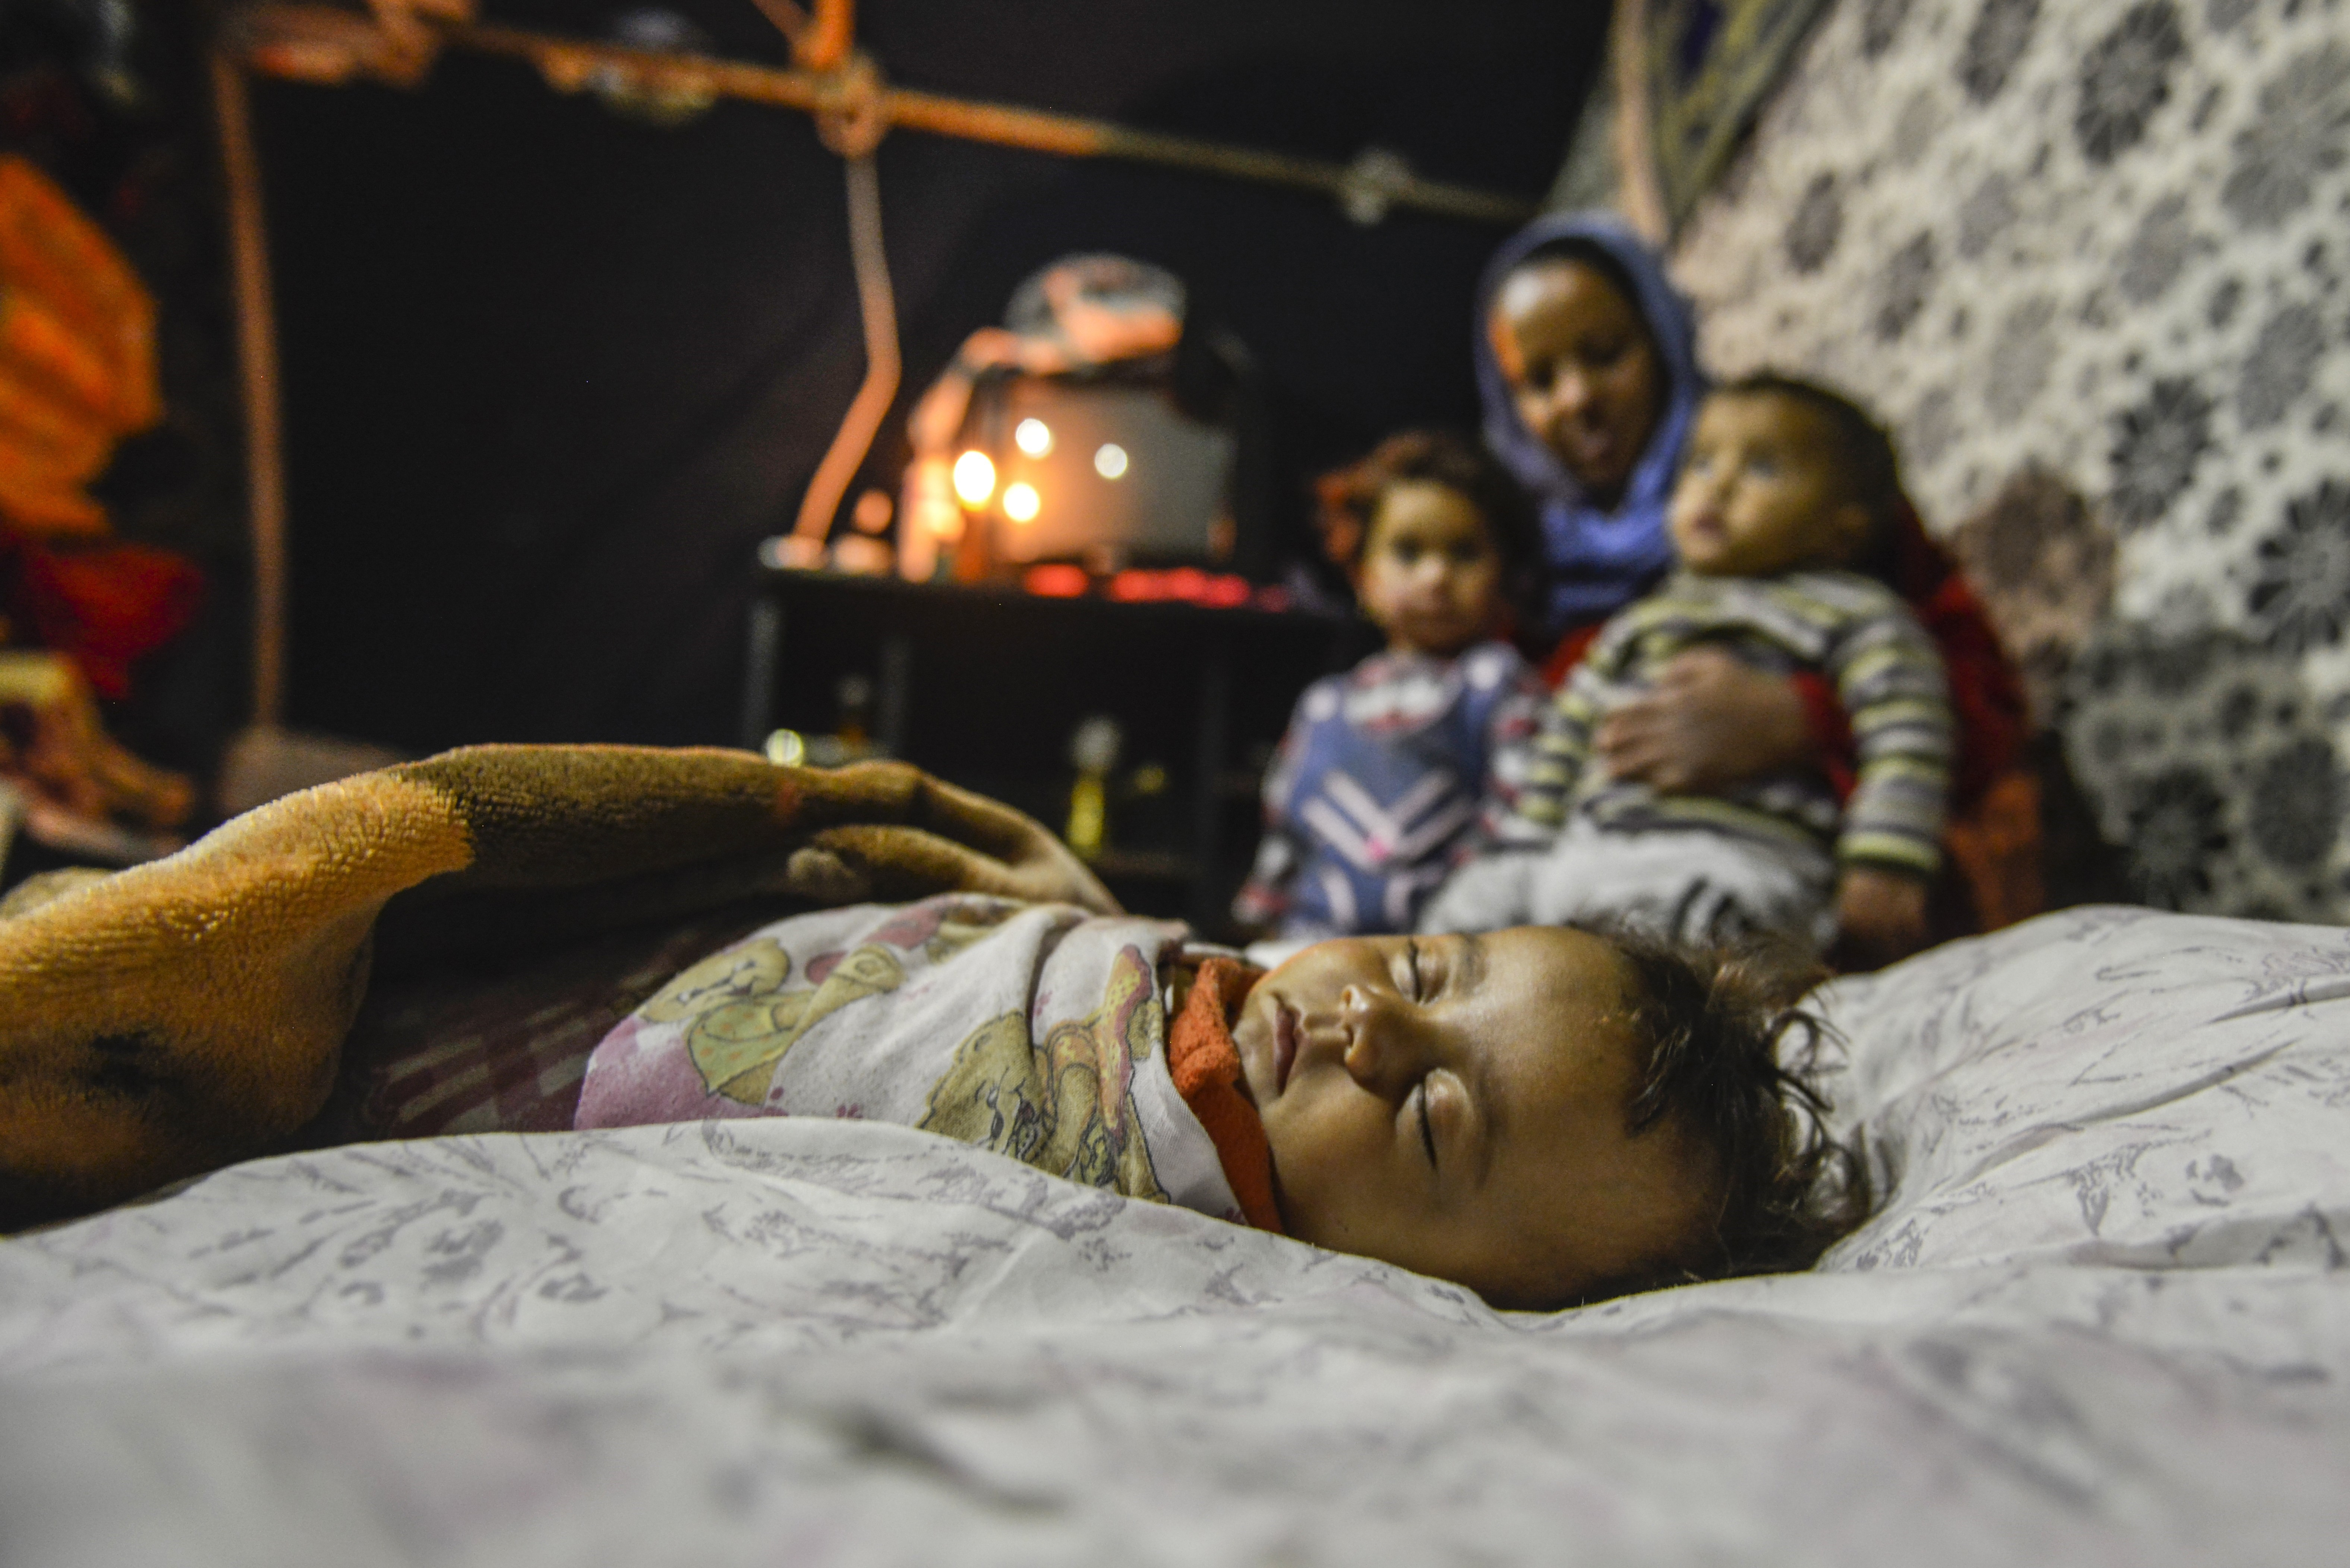 A Syrian refugee baby, who fled the civil war in his country, sleeps in his family's tent in Van, Turkey, on November 16, 2015.